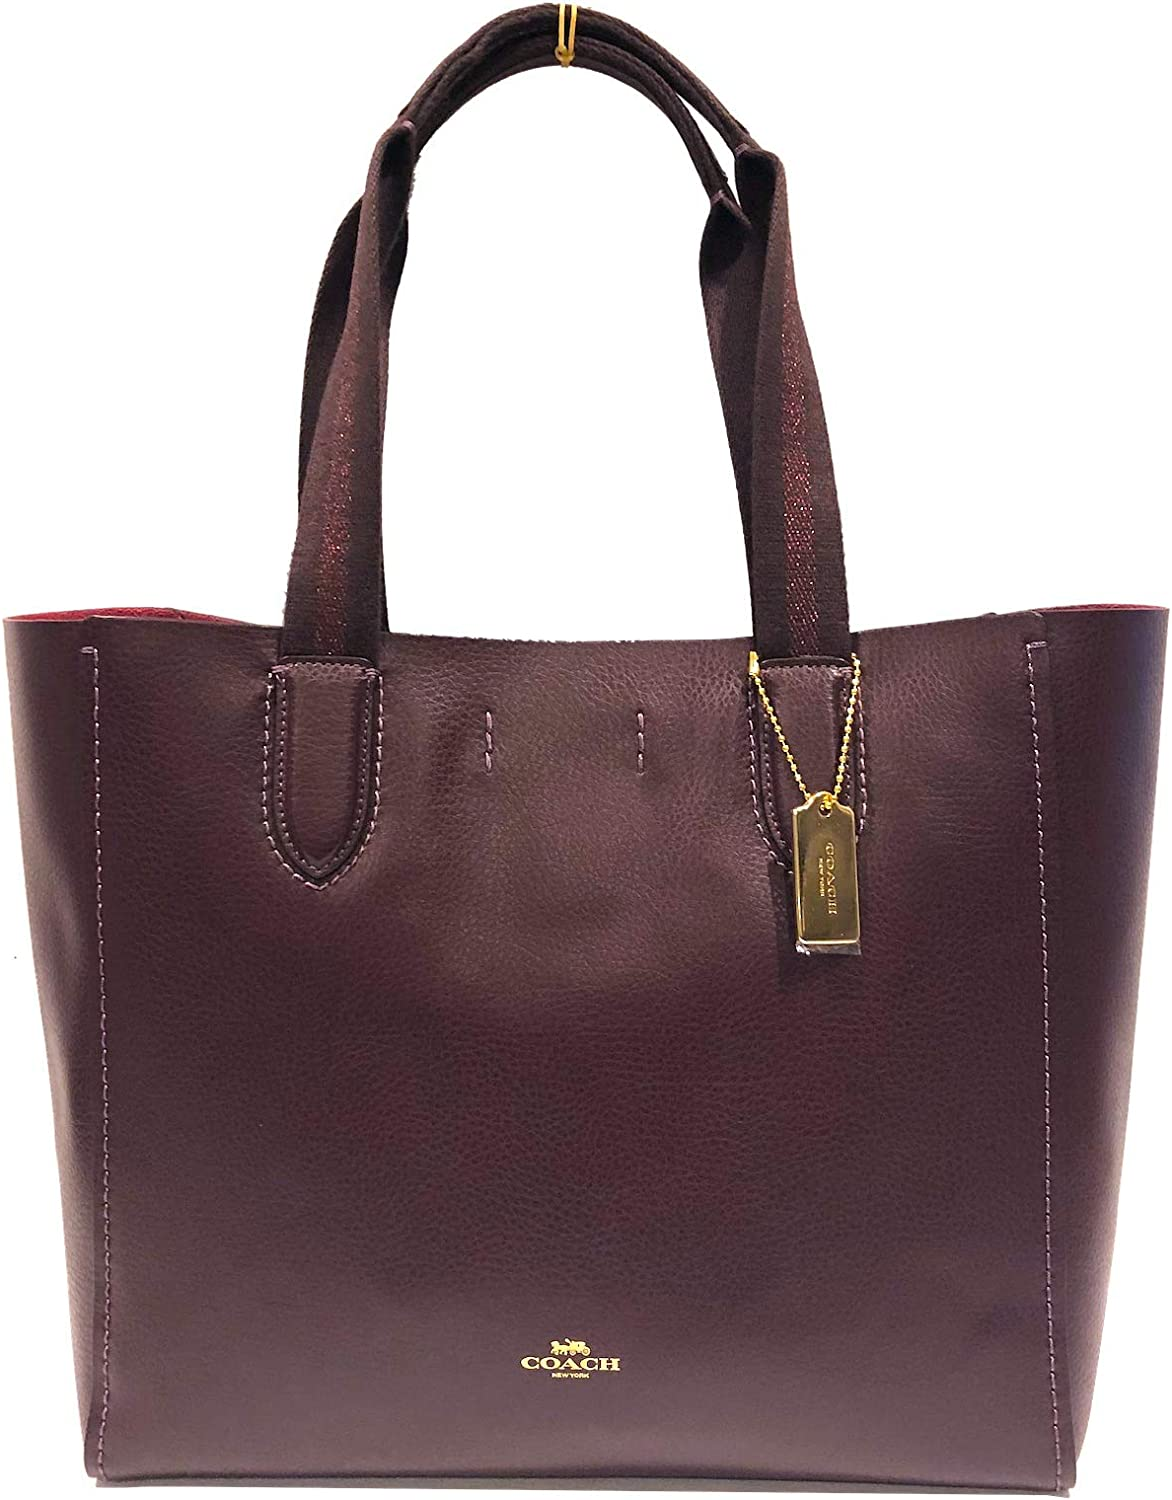 COACH DERBY TOTE IN PEBBLE LEATHER